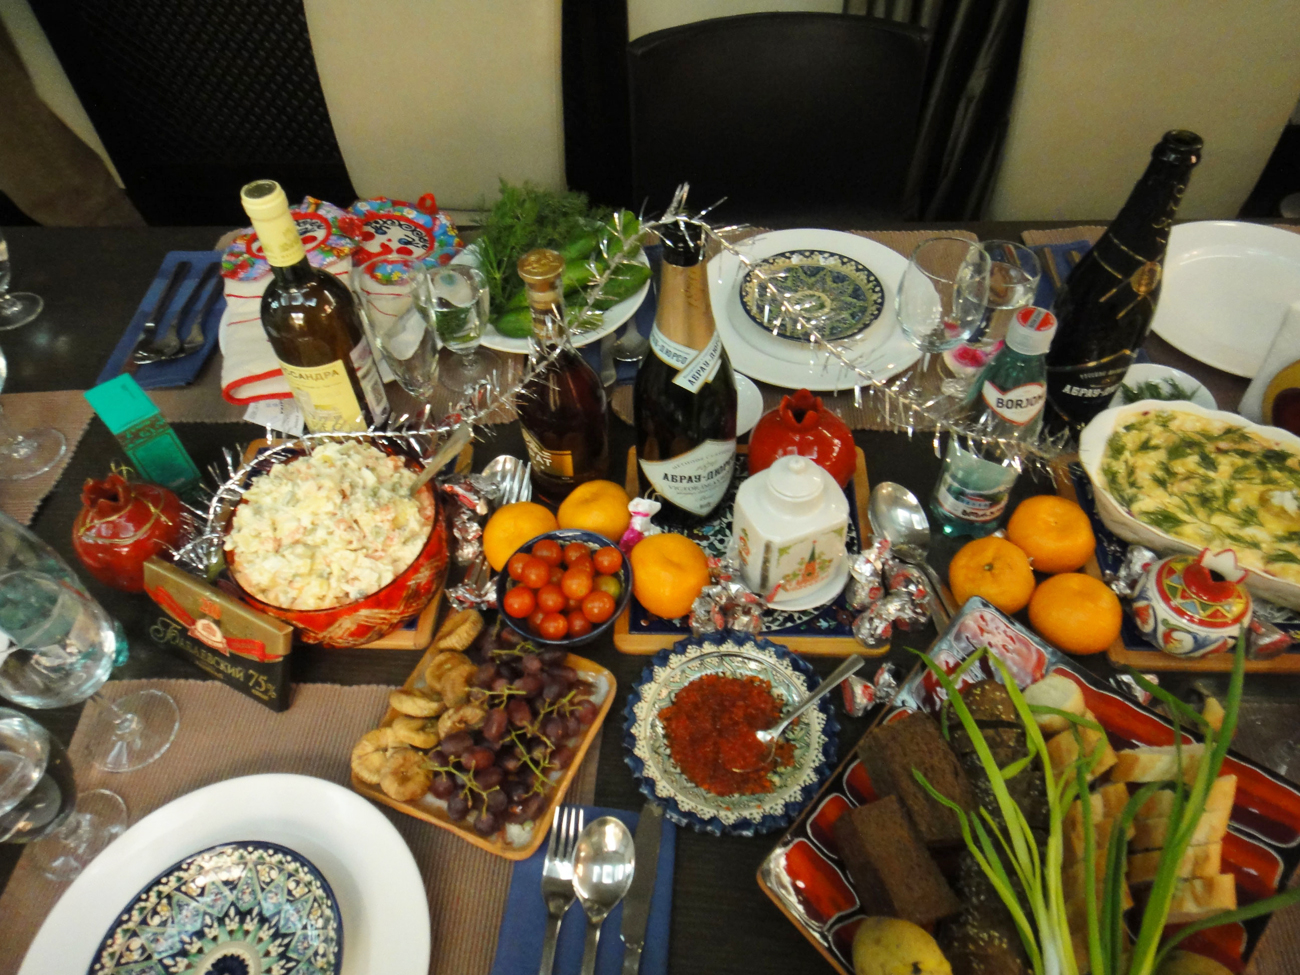 New Year table, Soviet diet style. Source: Anna Kharzeeva